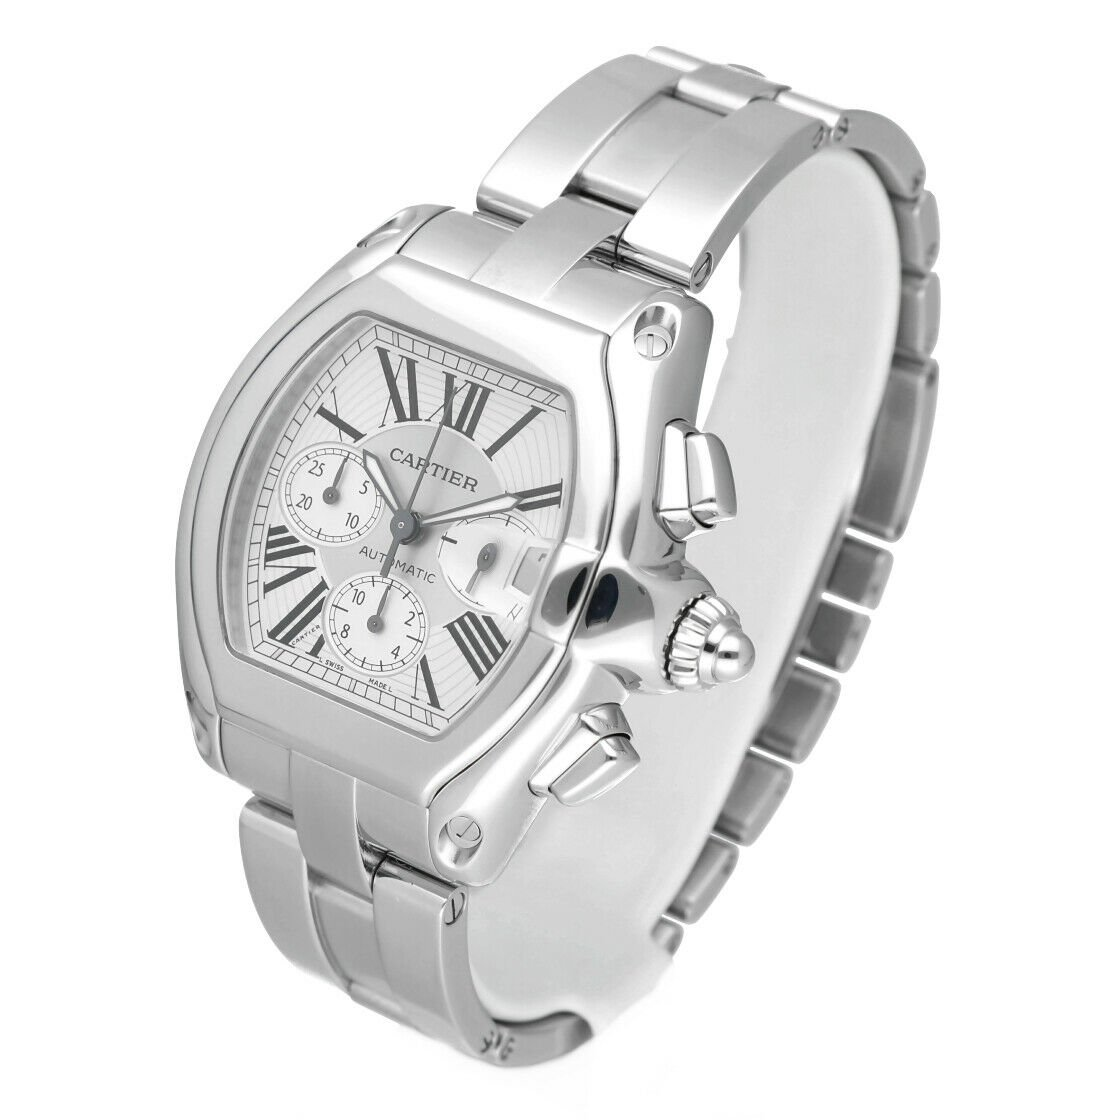 Cartier Roadster 2618 Chronograph XL Silver Dial Stainless Steel Mens Watch 114339442665 2